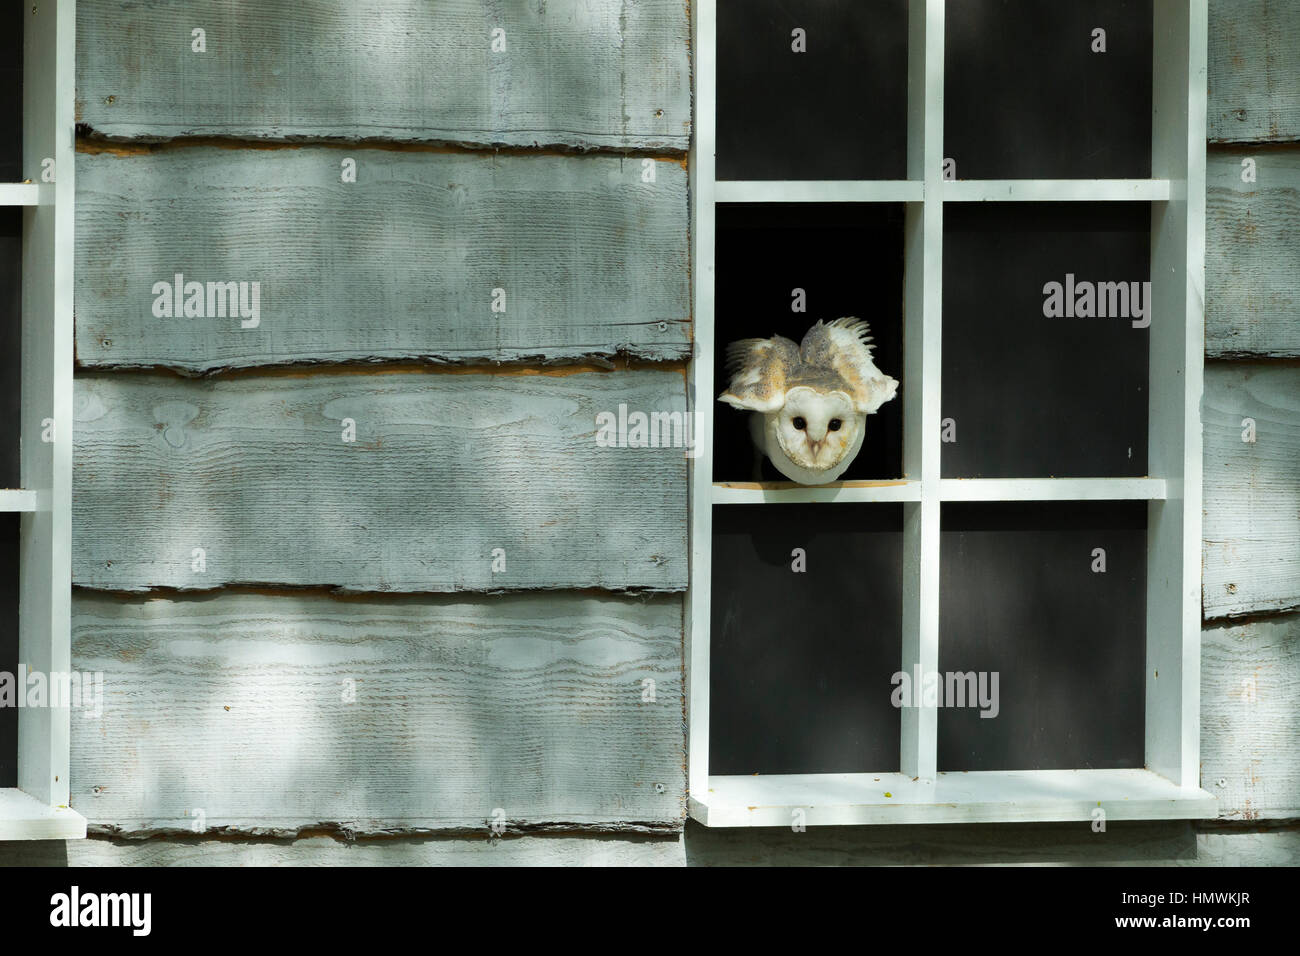 Barn owl Tyto alba (captive), perched in wooden building, Hawk Conservancy Trust, Hampshire, UK in May. - Stock Image